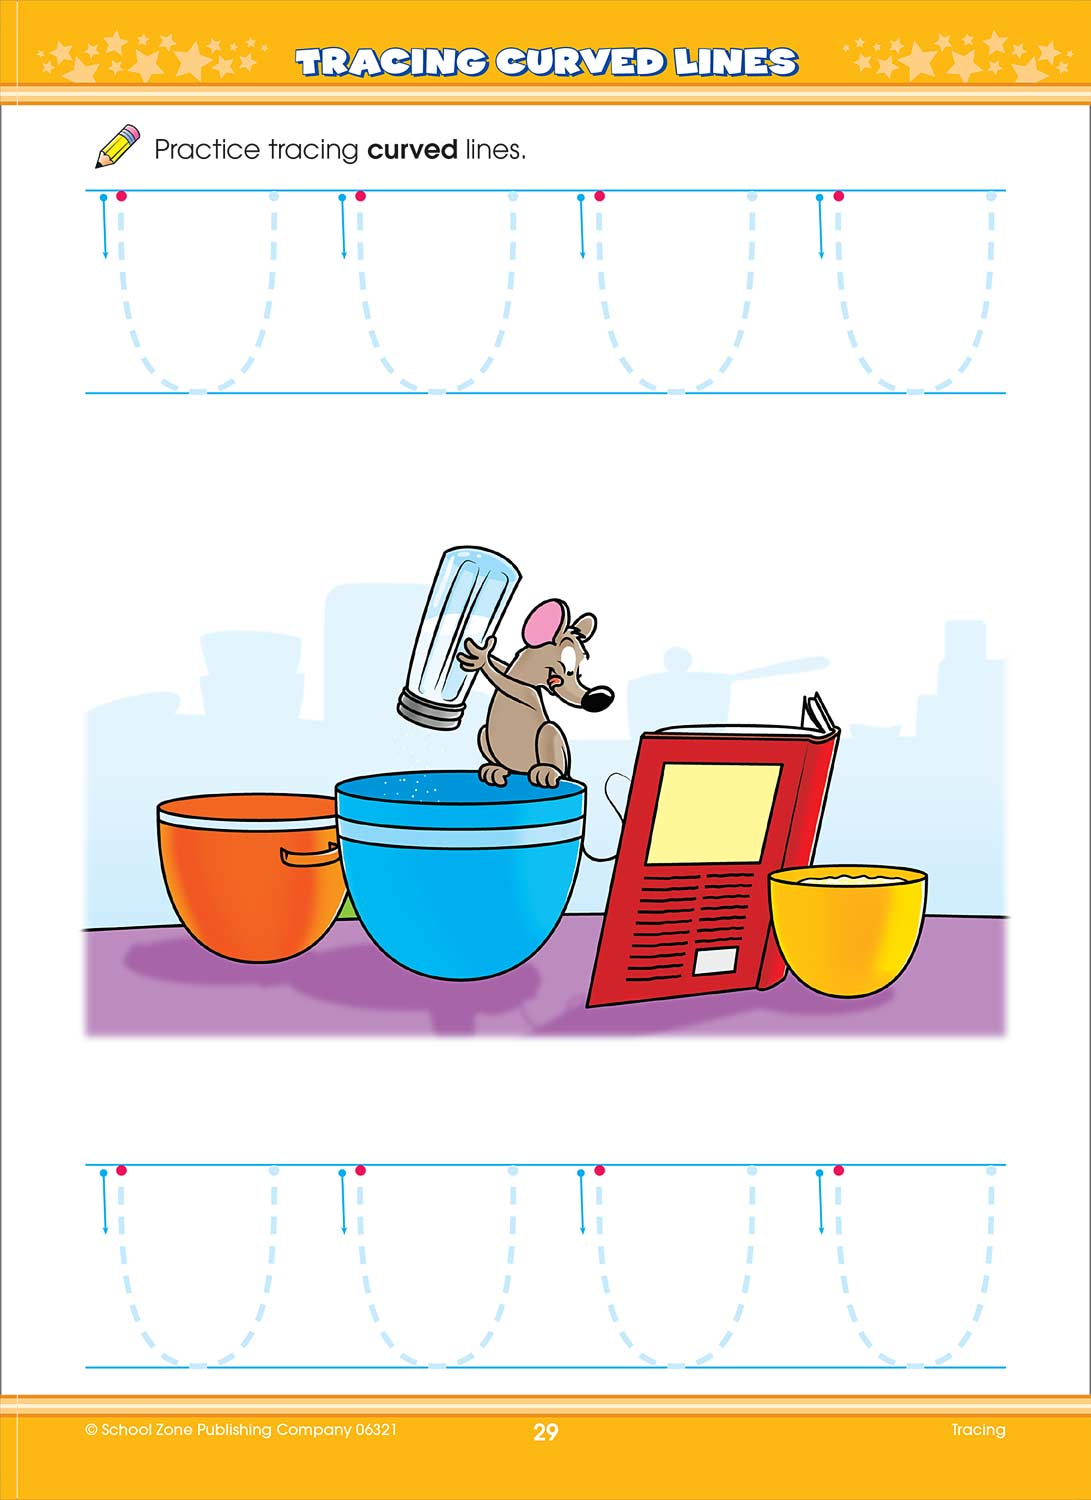 Workbooks big third grade workbook : Big Preschool Activity Workbook - Fun Stuff Toys